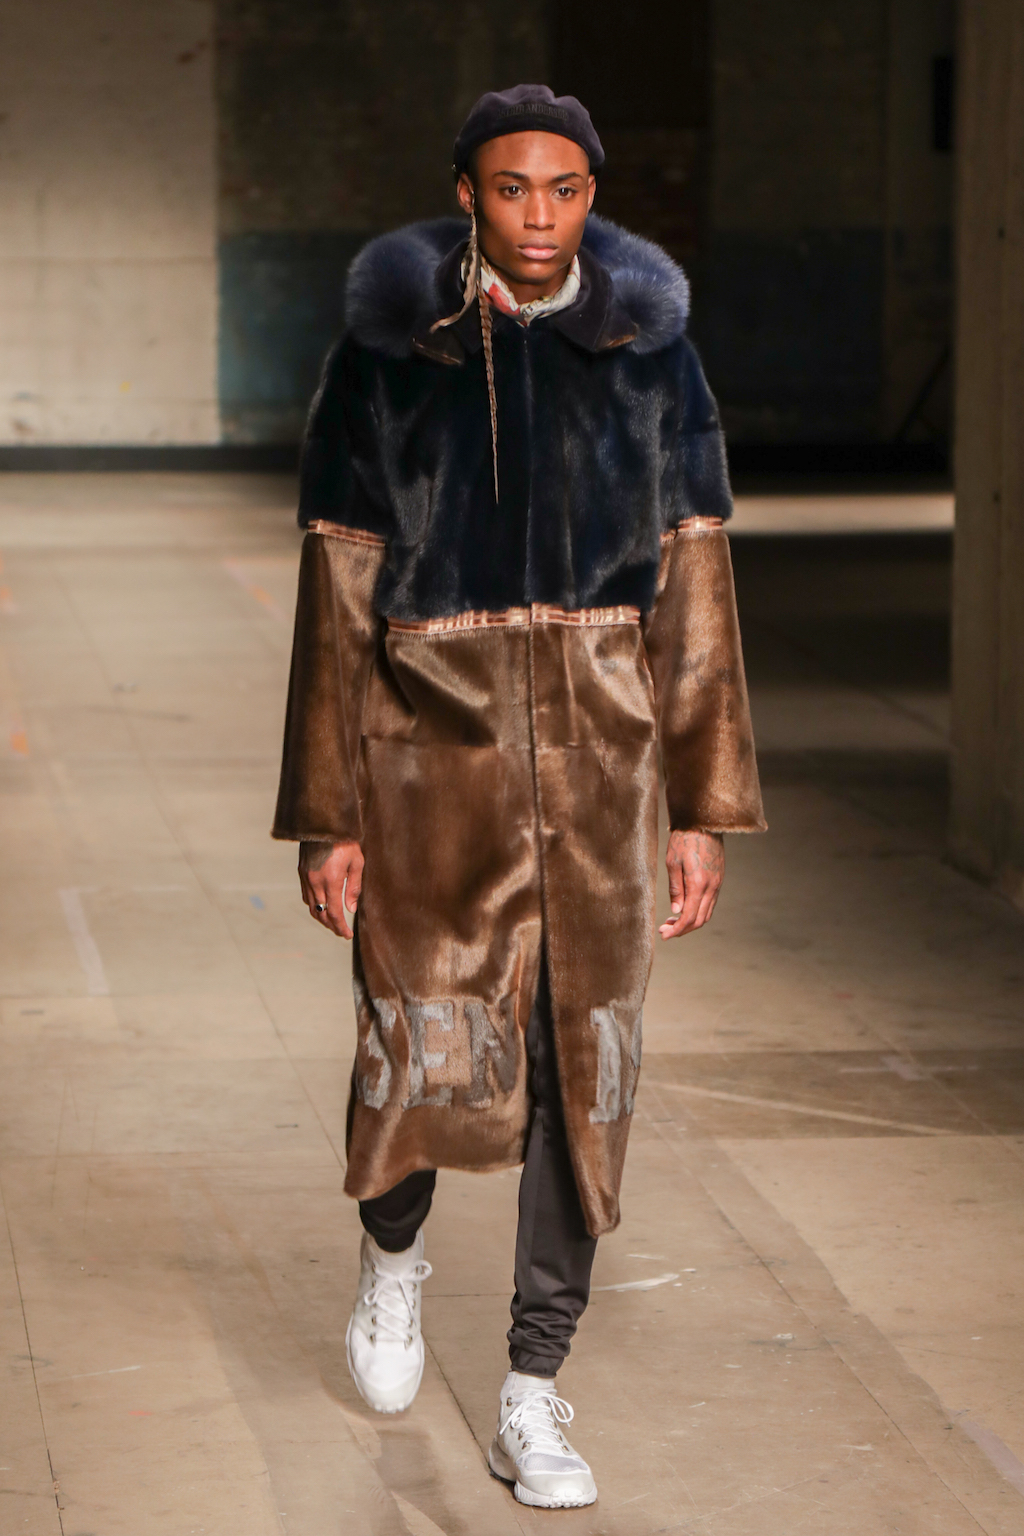 lfwm-aw17-astrid-andersen-filippo-lastorina-the-upcoming-24